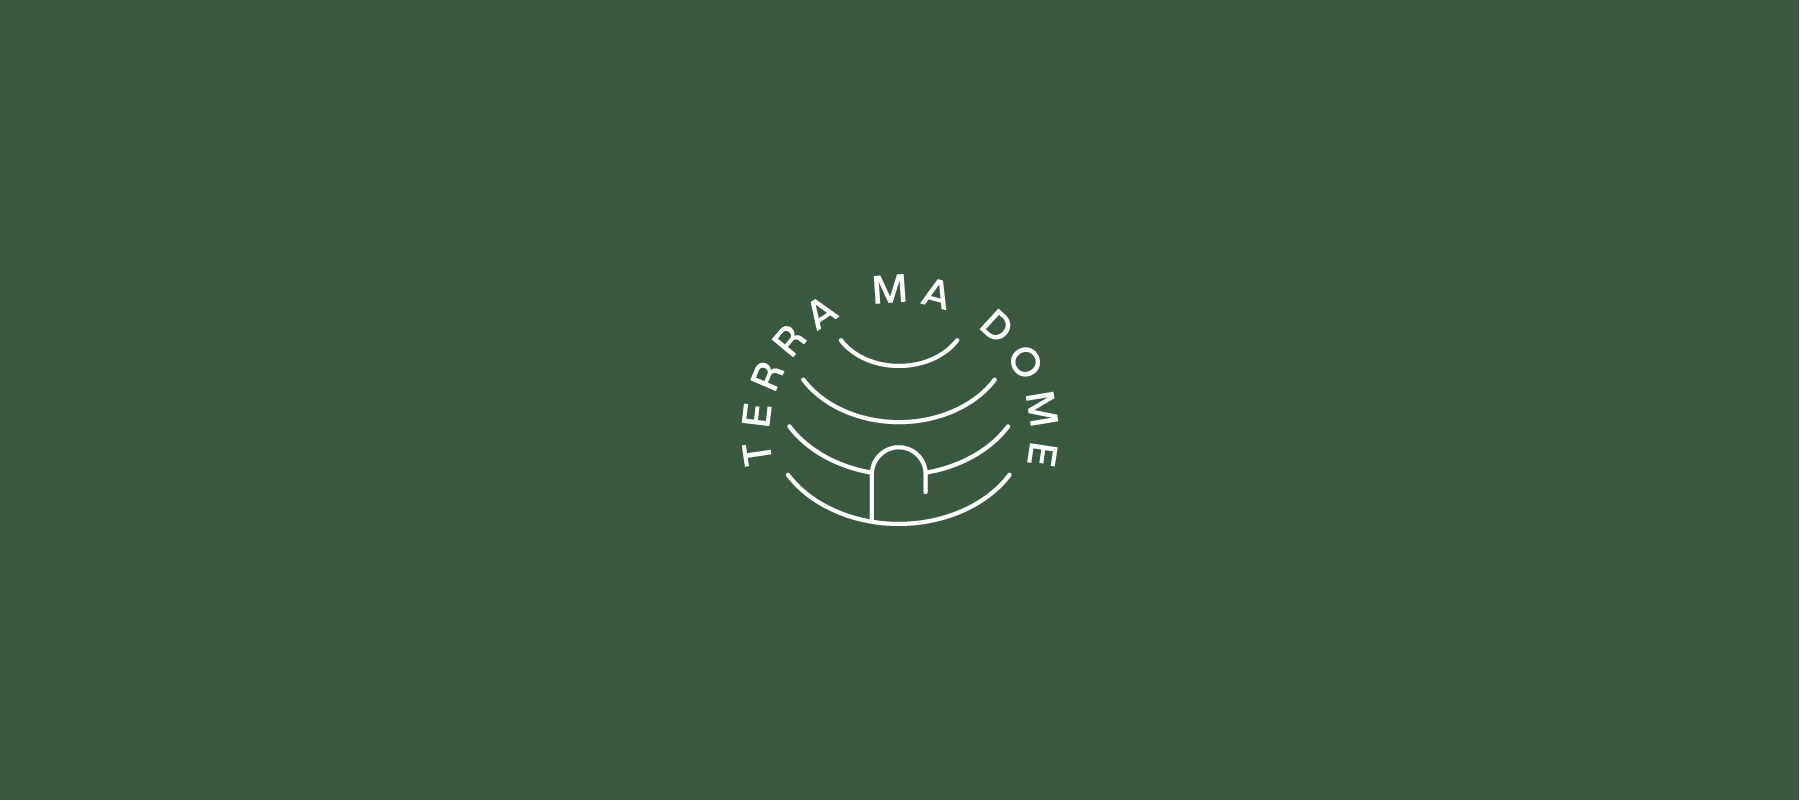 perks.design_terra-ma-dome_logo.png